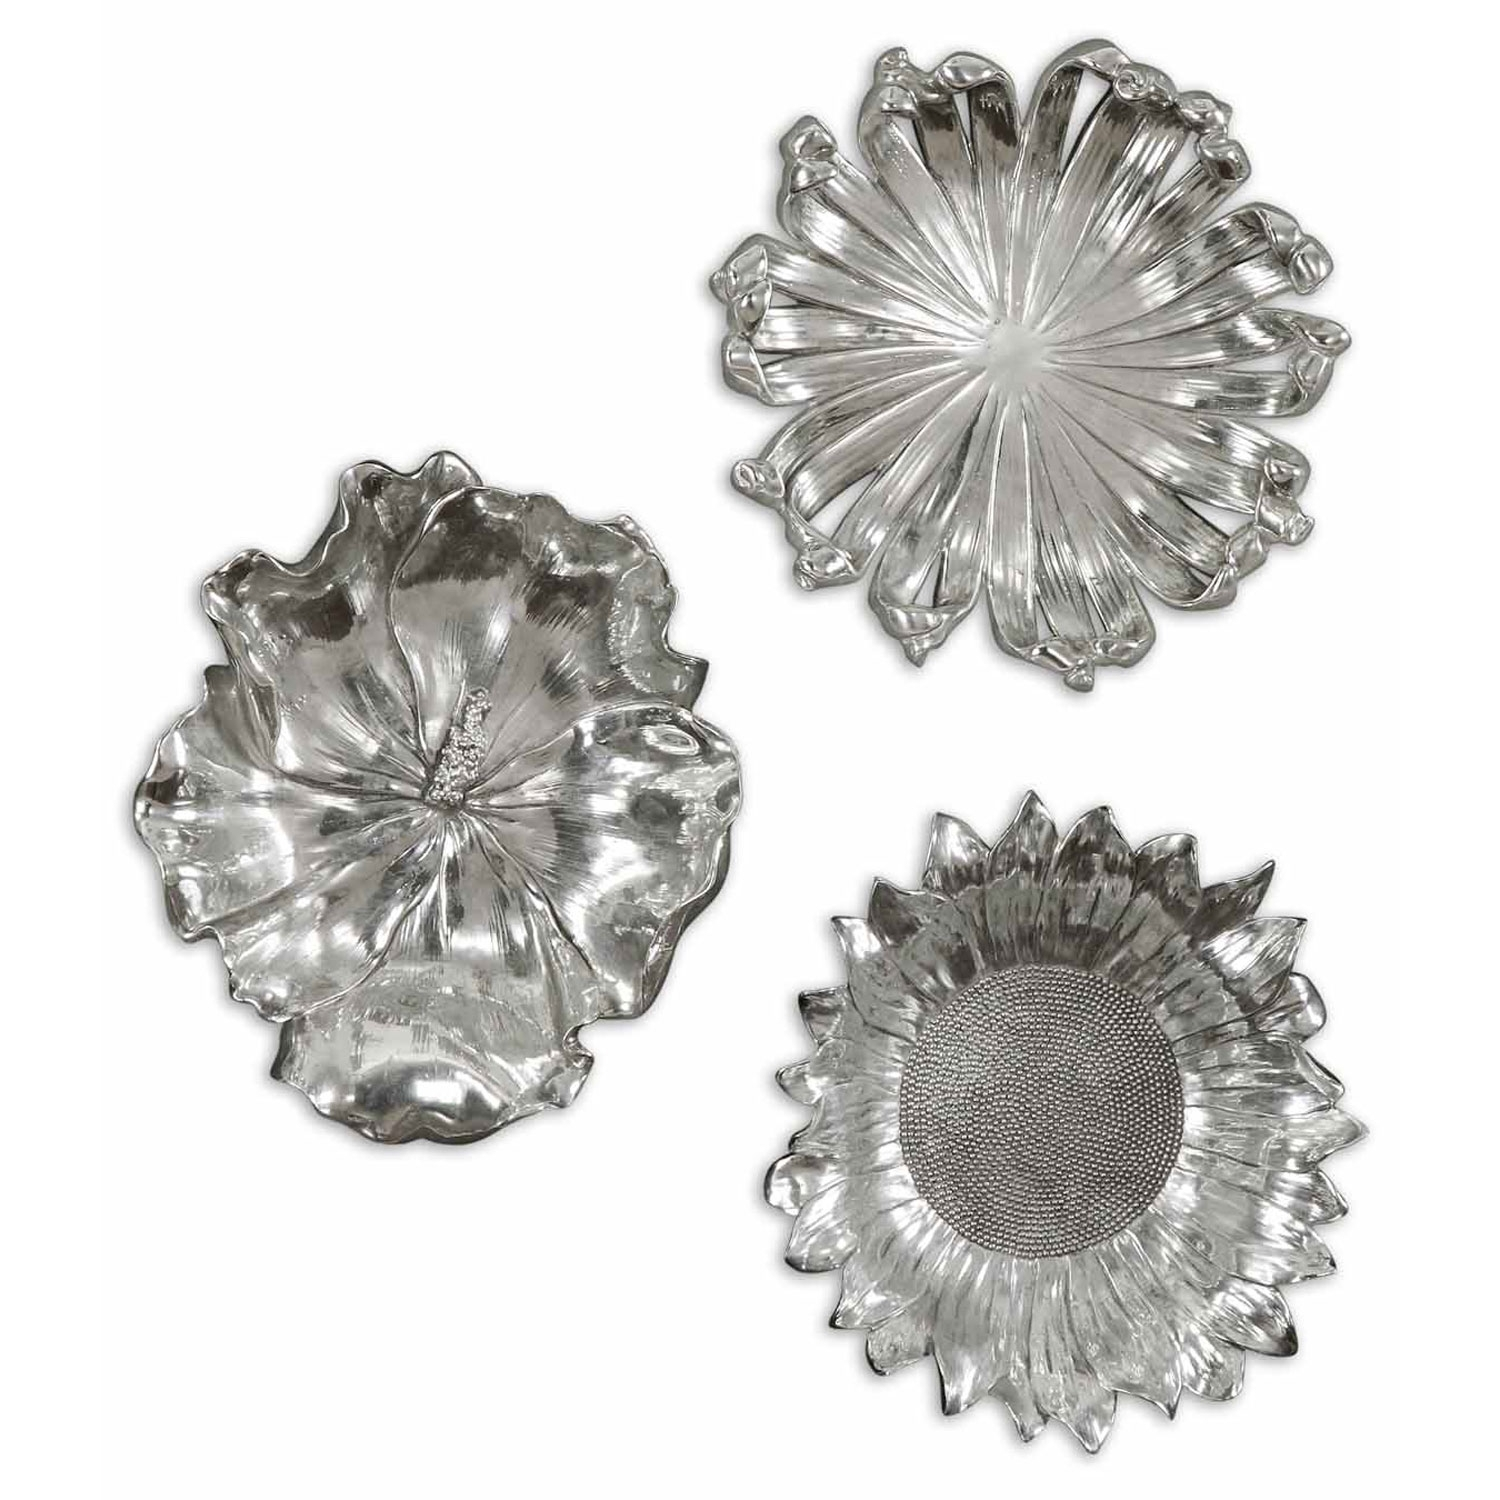 Uttermost Silver Flowers Metal Wall Art, Set Of Three 08503 | Bellacor Inside Most Popular Wall Art Metal (View 13 of 20)